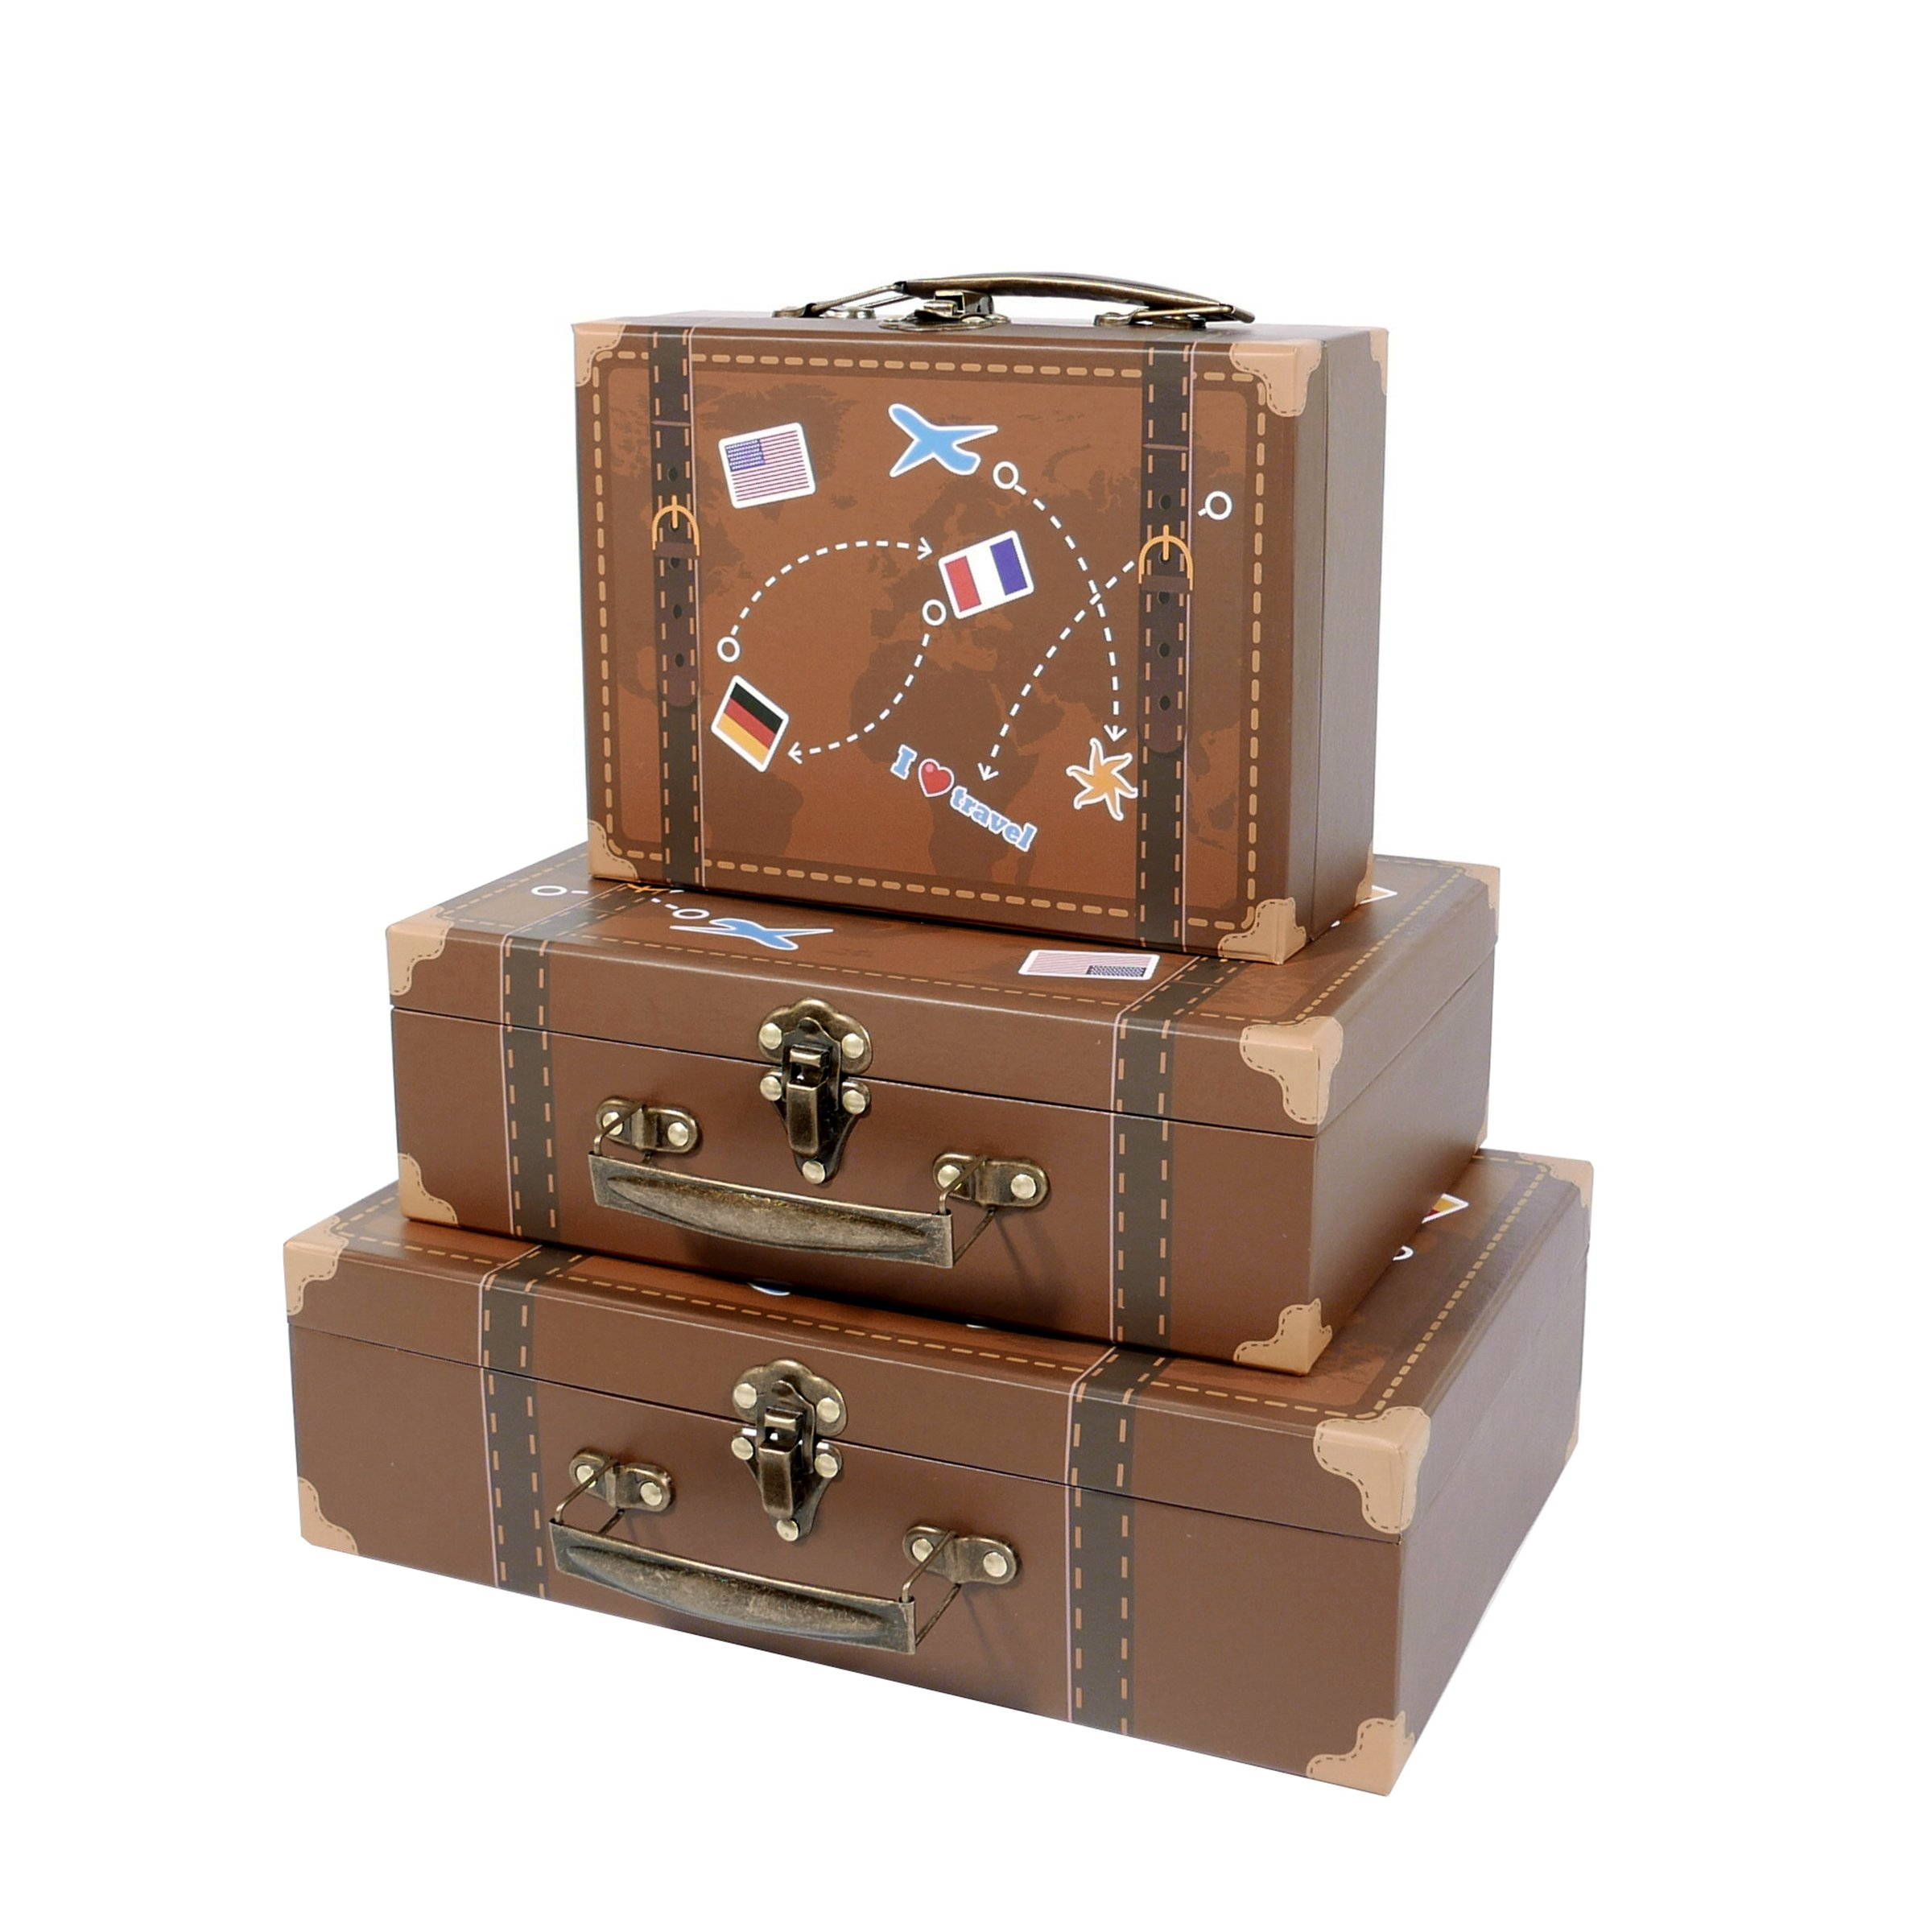 SLPR Paperboard Suitcases (Set of 3, Travel) | Decorative Boxes for Birthday Parties Wedding Decoration Displays Crafts Photo Shoots by SLPR (Image #1)